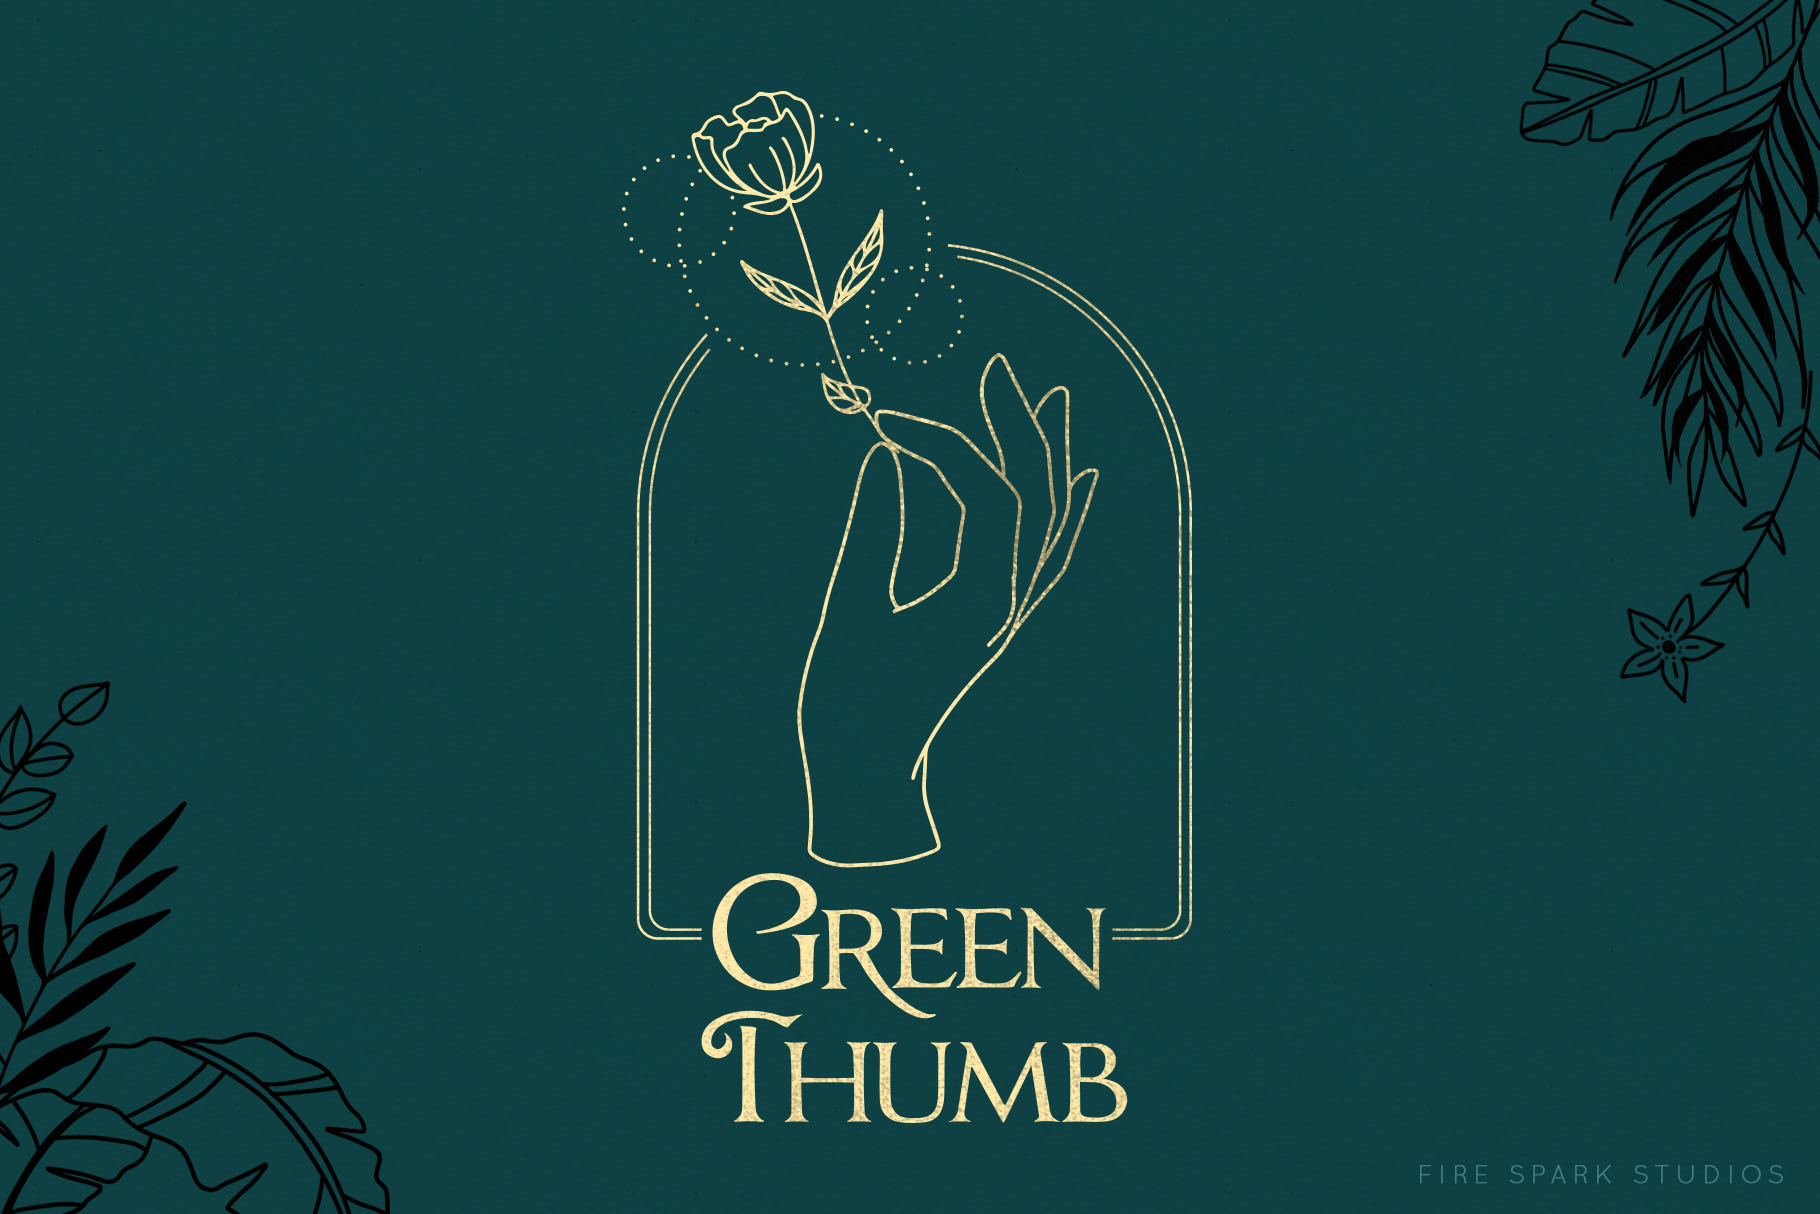 Green Thumb Illustrations & Textures example image 9